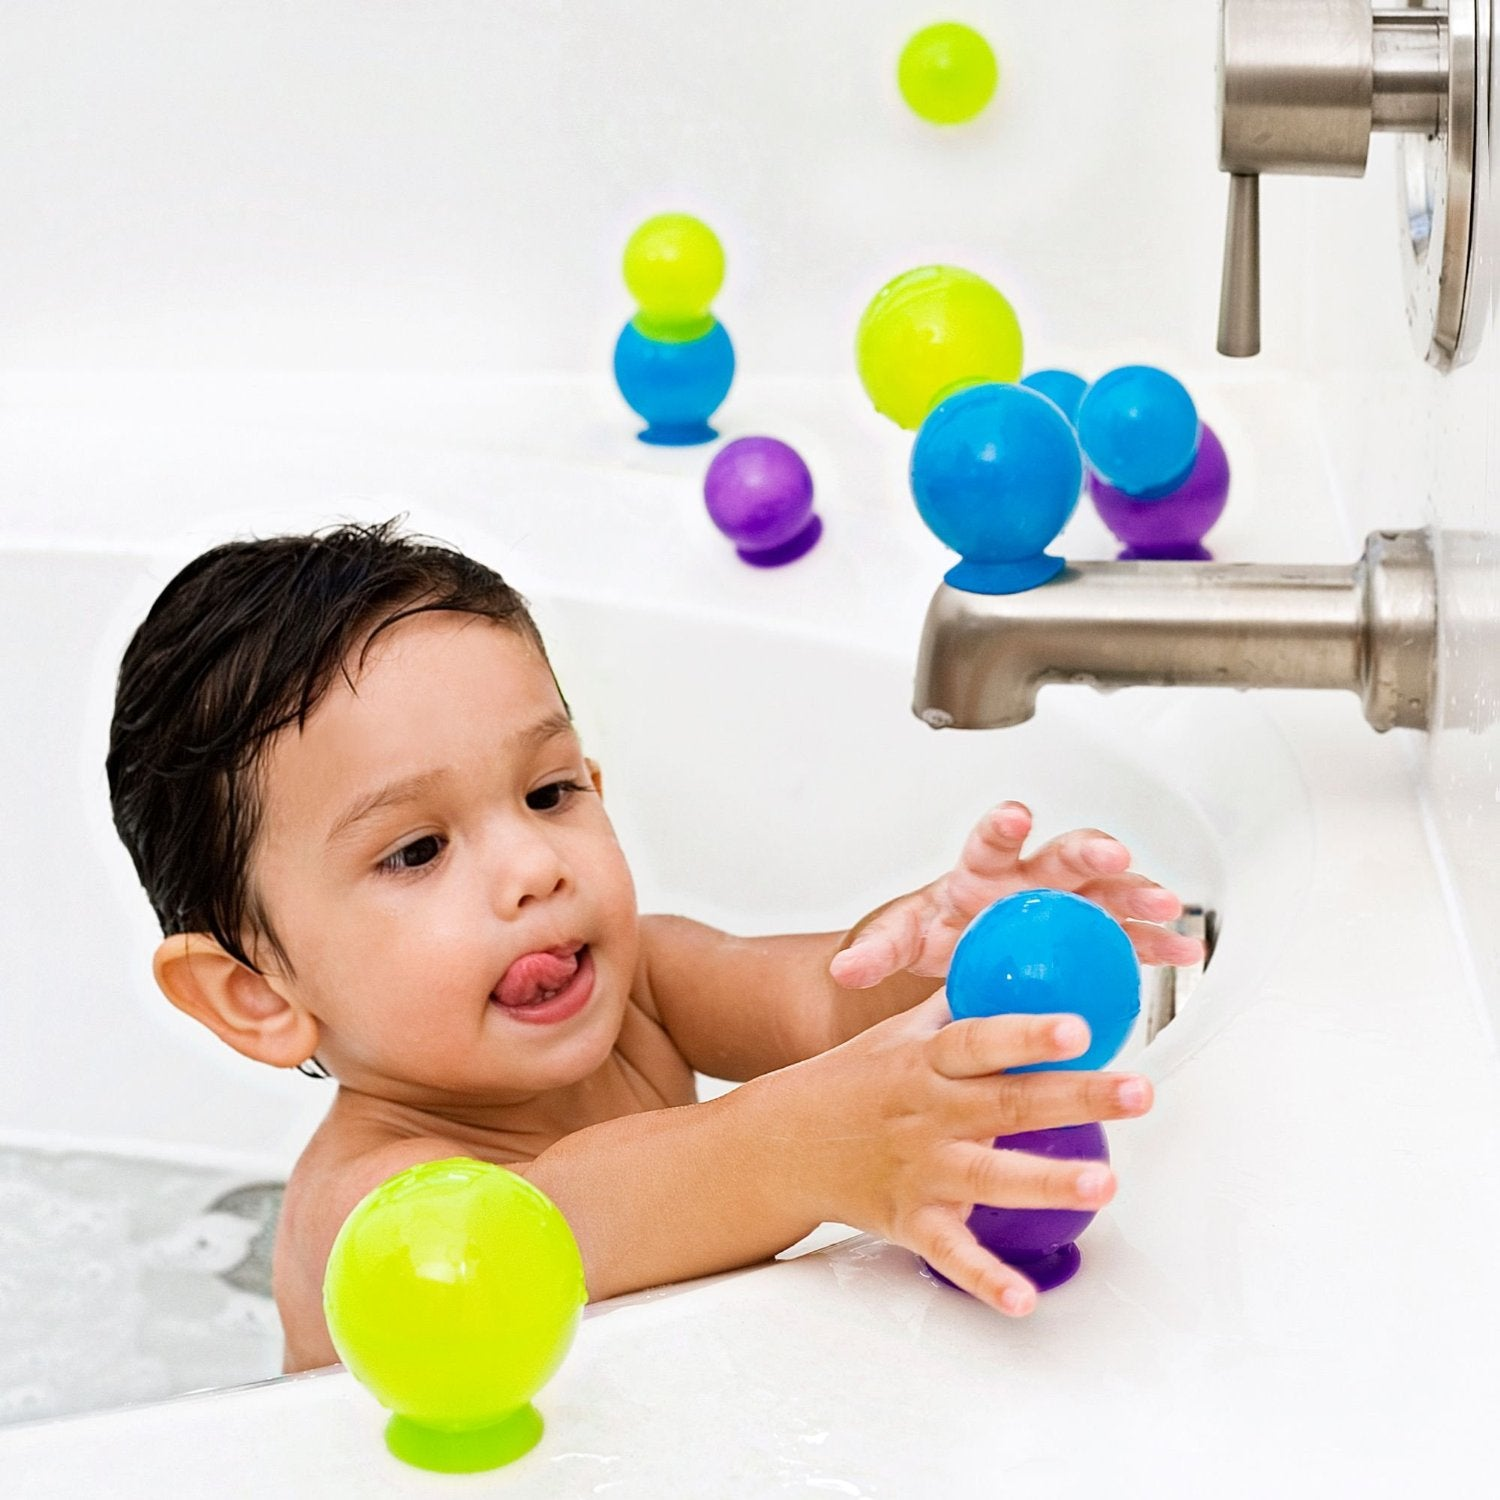 Tub, Bath Toys Bathing Your Baby Can Make Fun